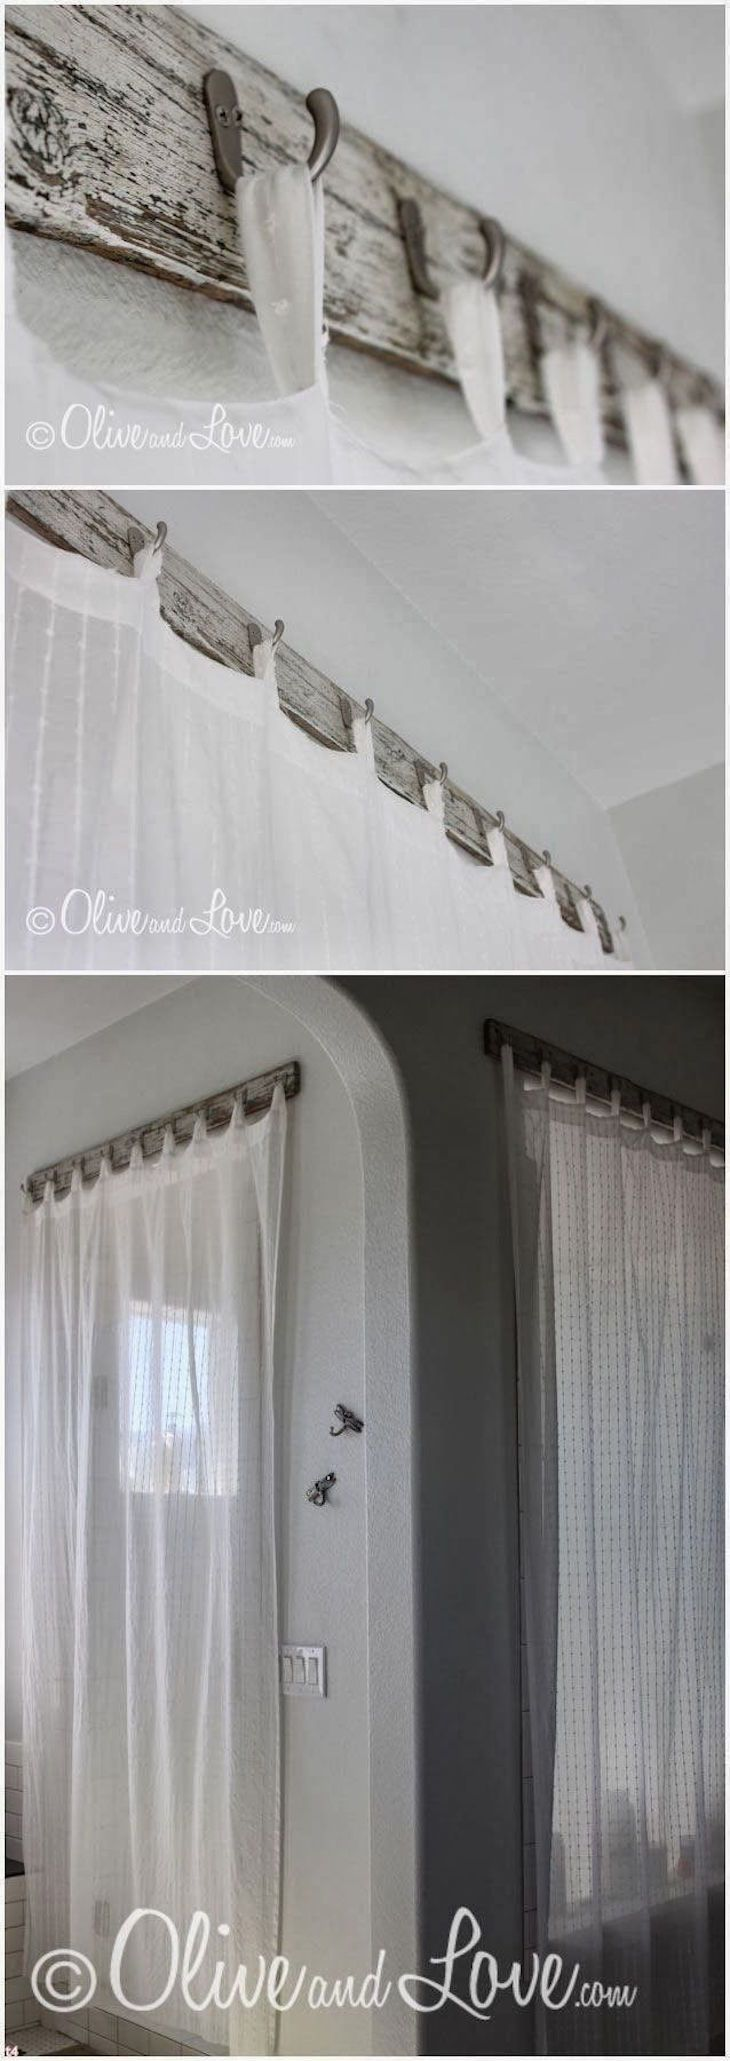 TOP 10 Decorative DIY Curtain Designs - Top Inspired